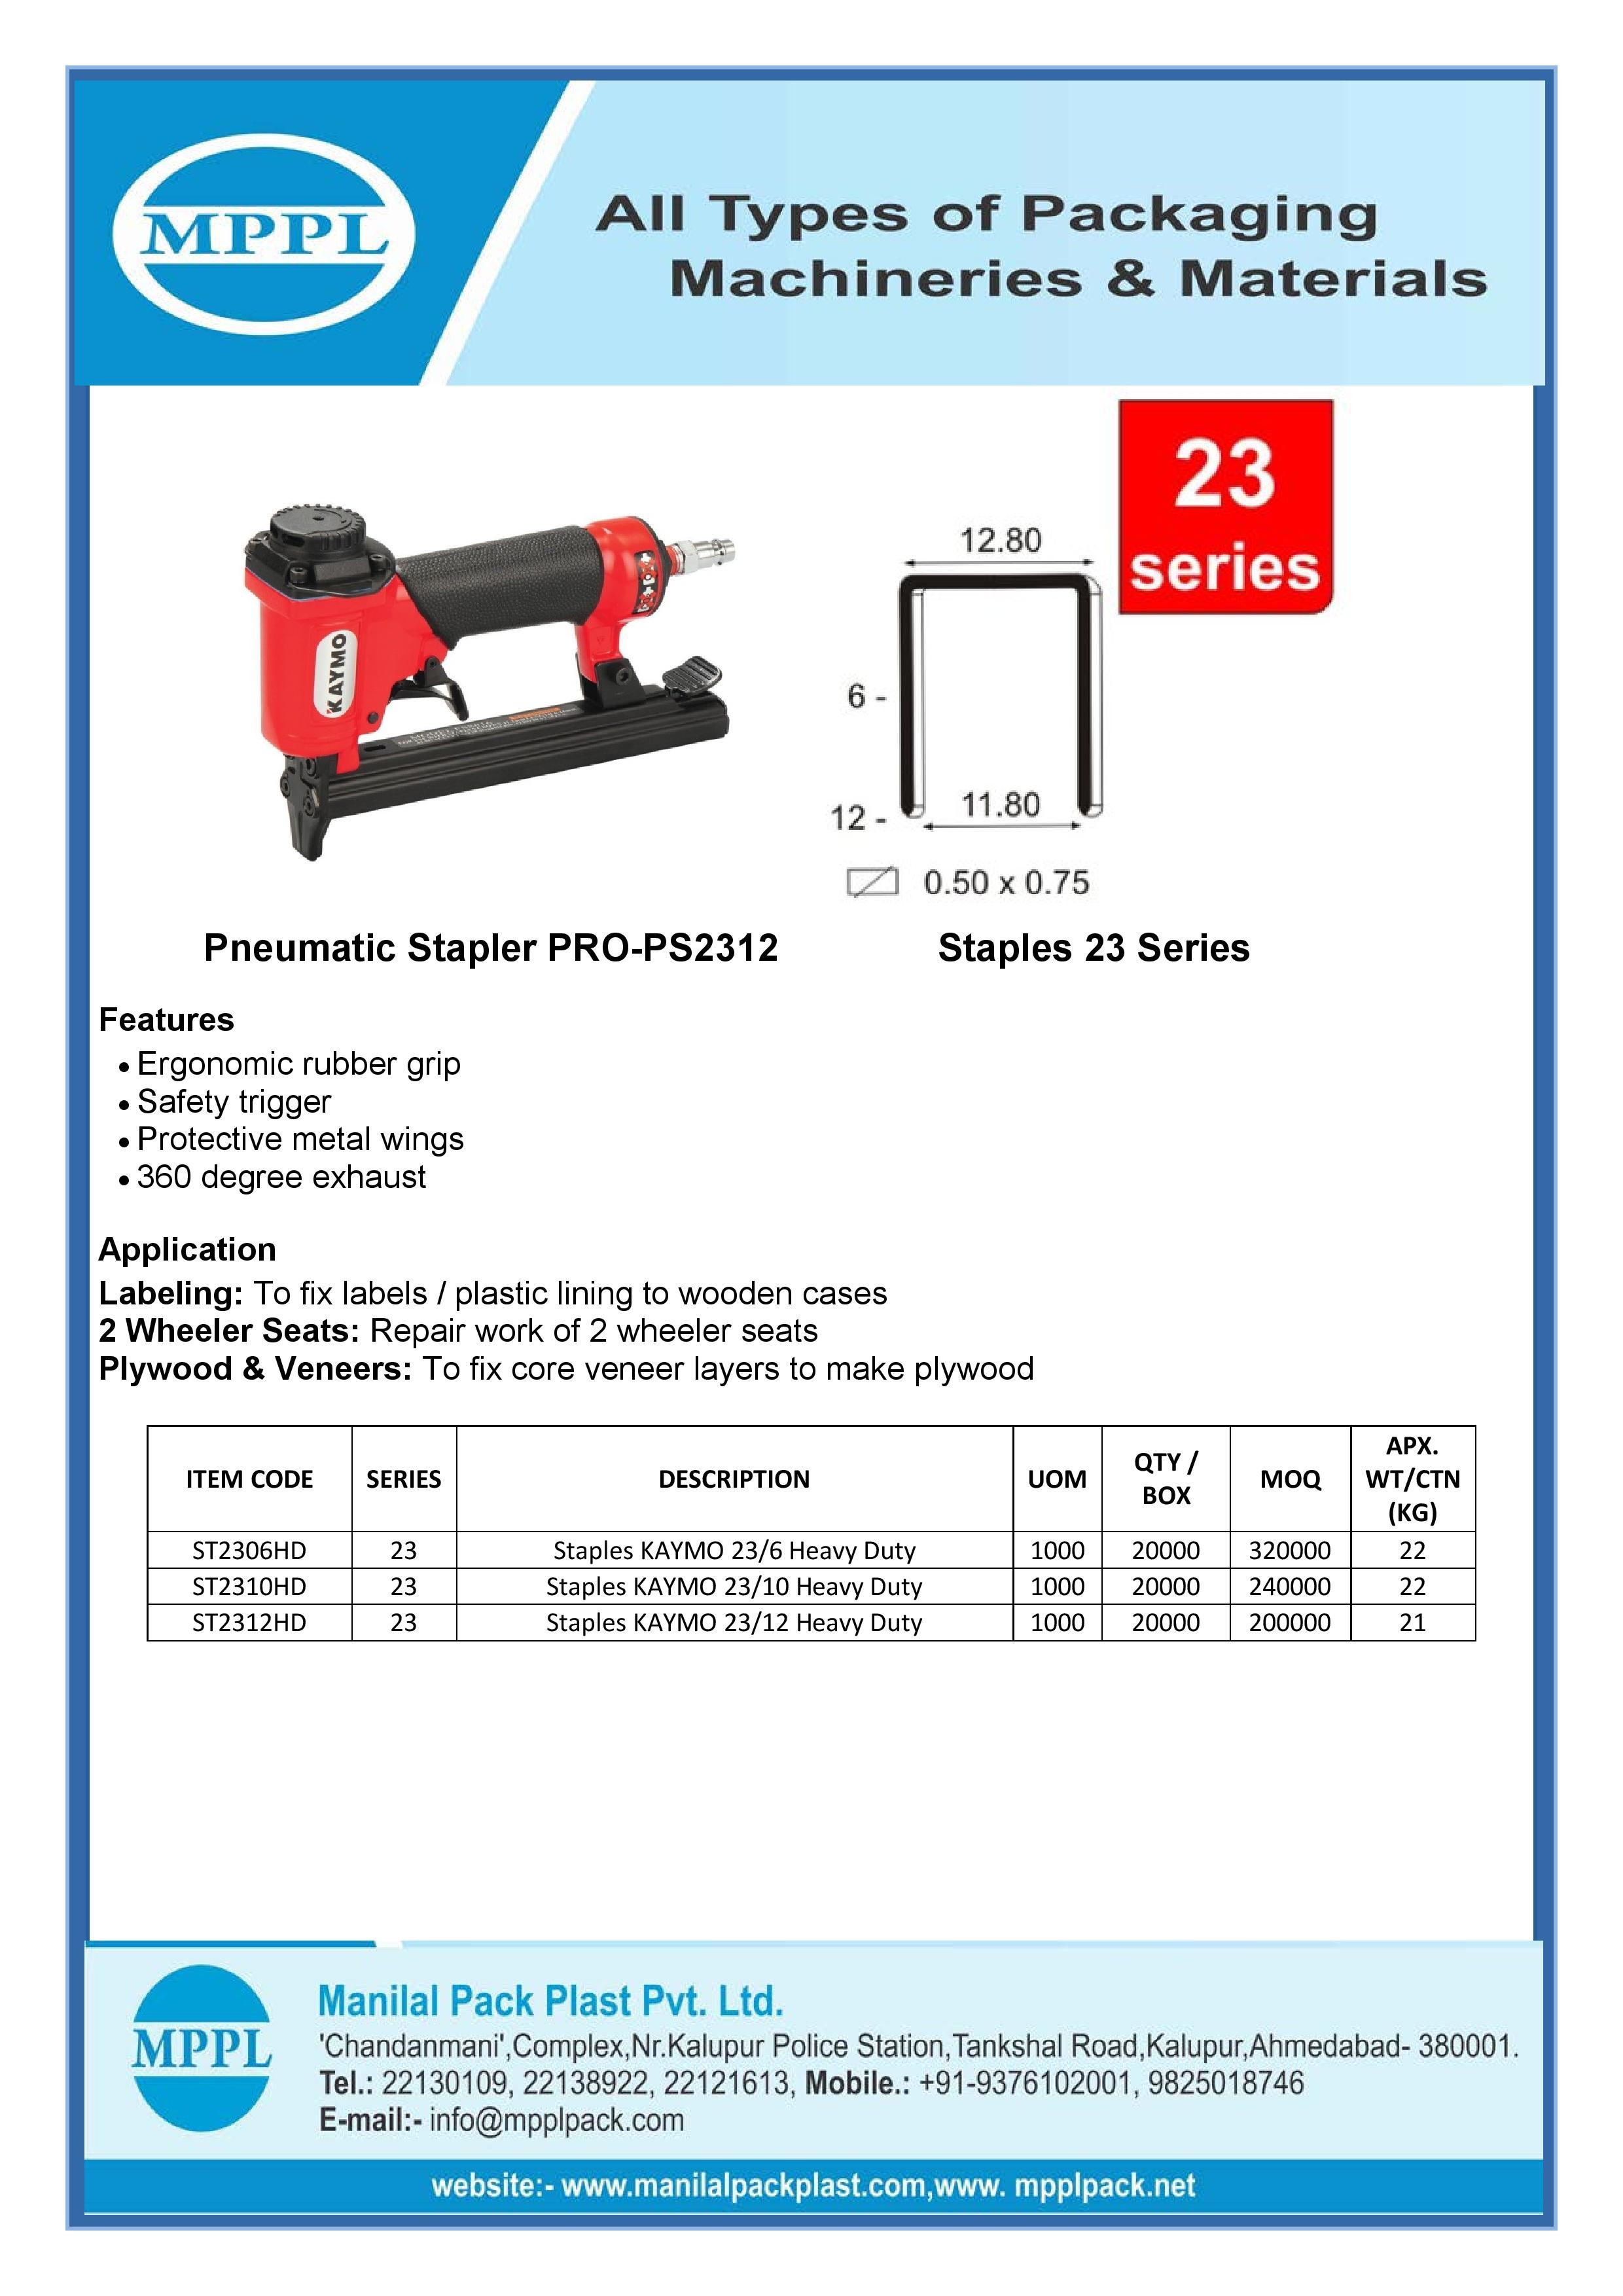 Pneumatic Stapler PRO-PS2312